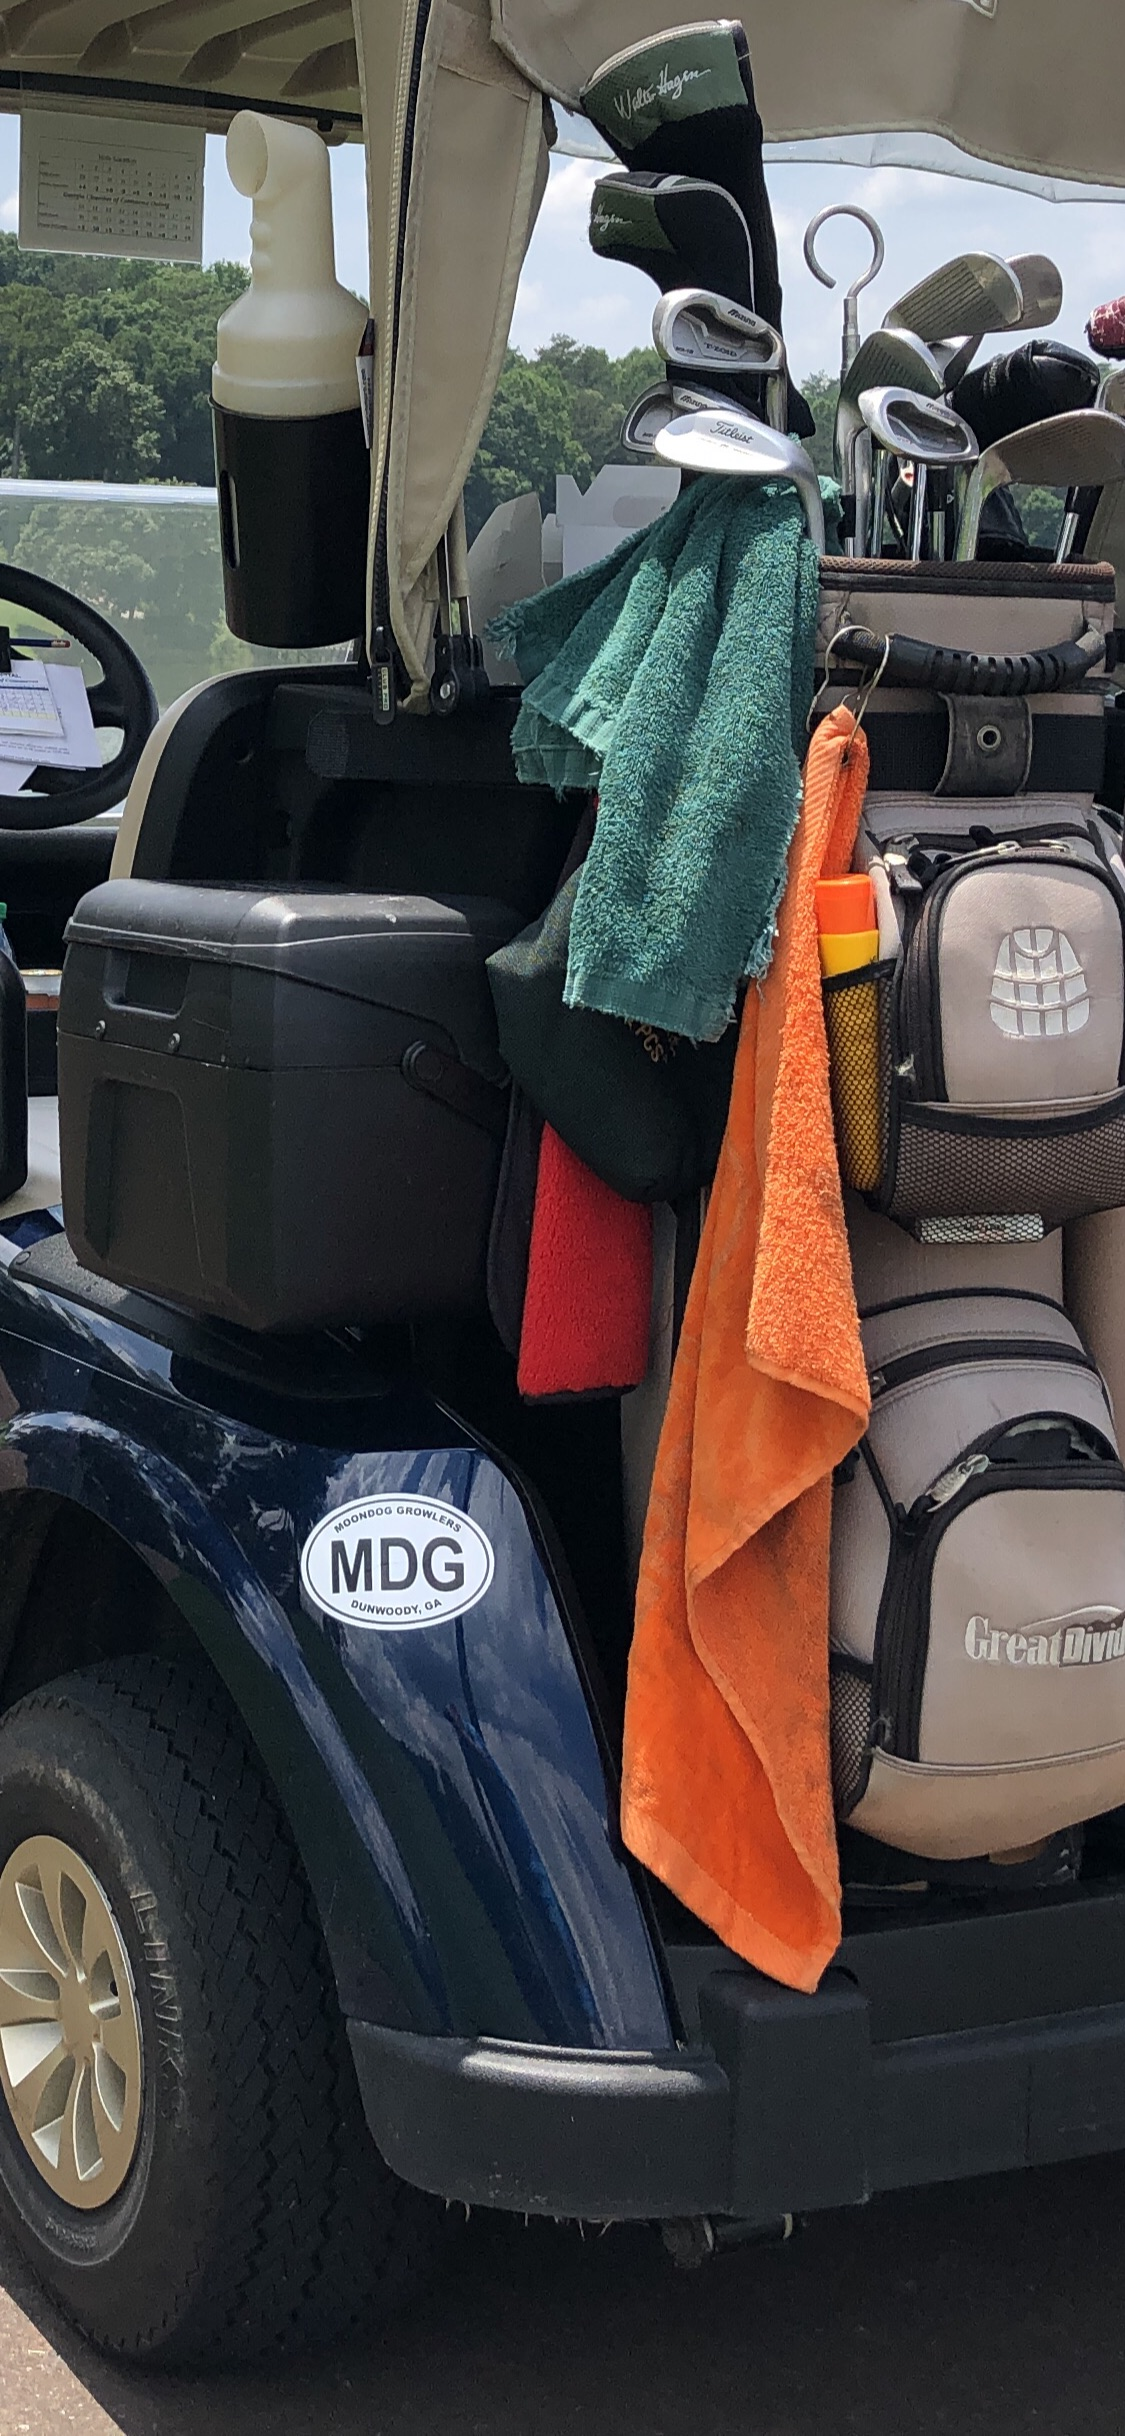 MDG logo on a golf cart at a local country club